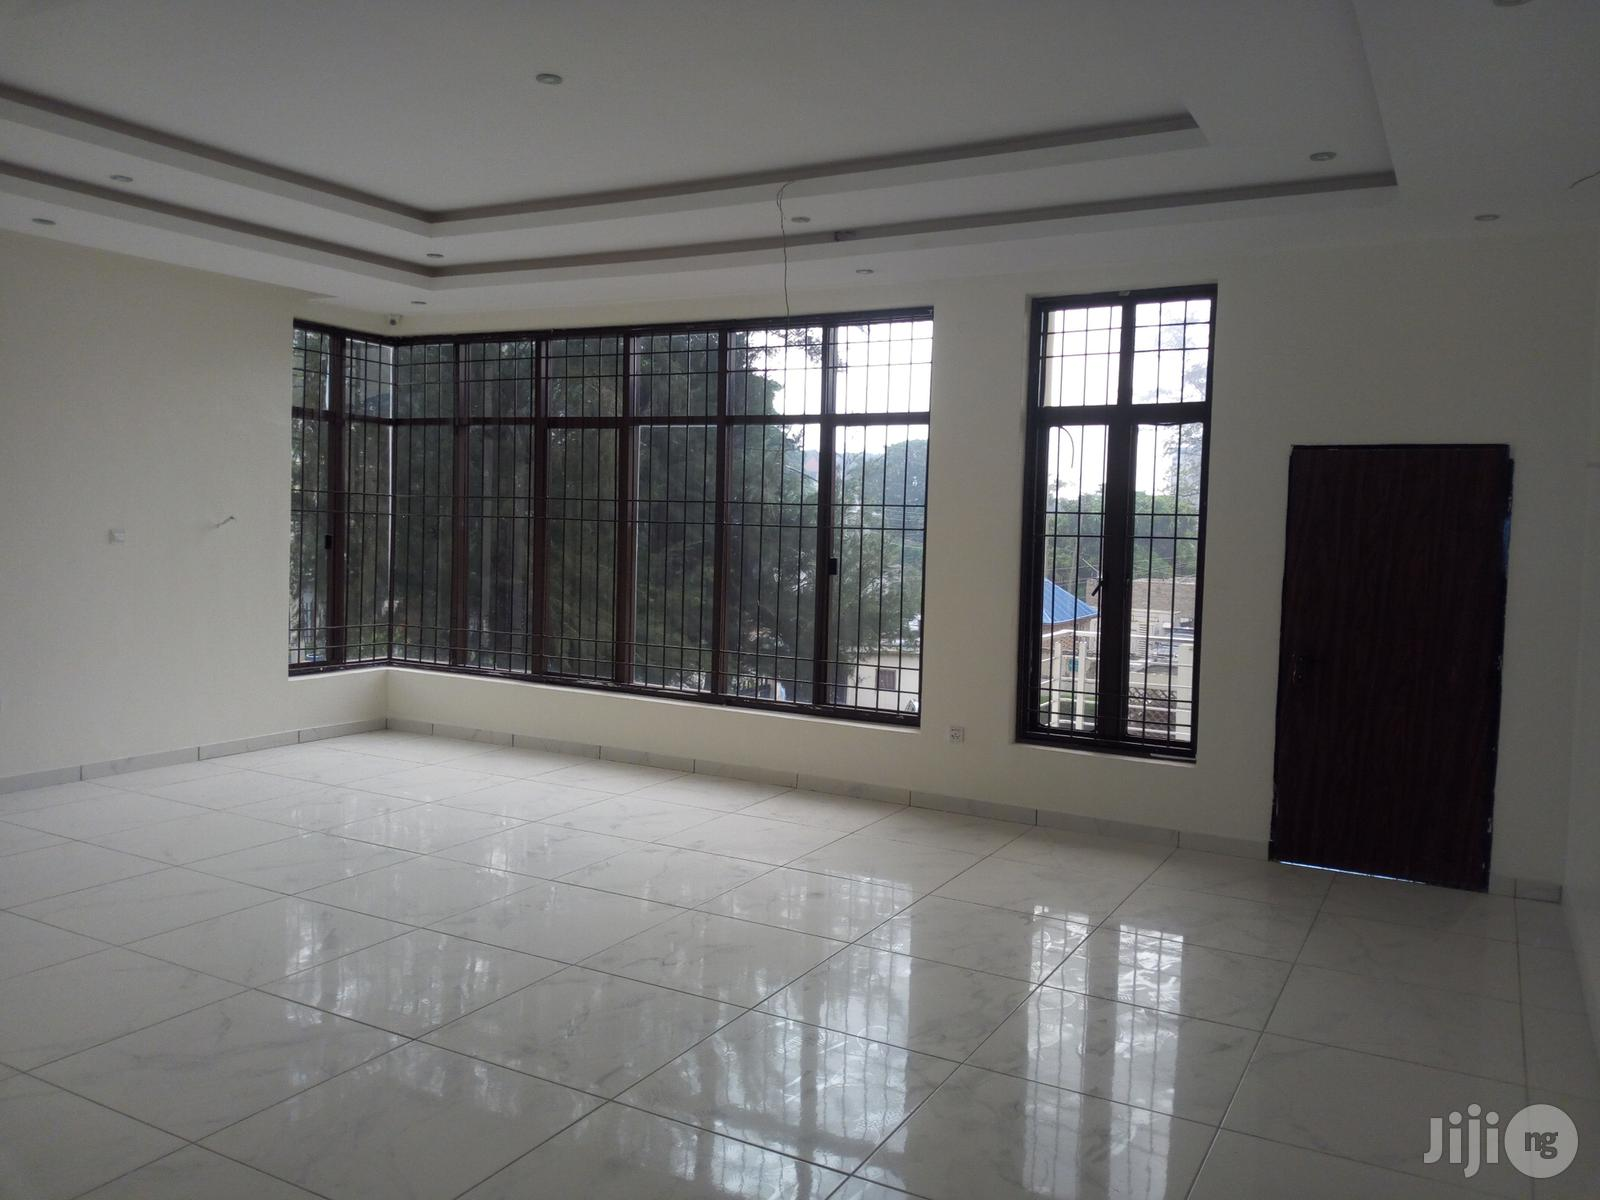 Newly Built 4 Bedroom Townhouse With an Attached Boys Quarters on 3 Split Floors Off Bishop Aboyode Cole Street, Victoria Island, Lagos. | Houses & Apartments For Rent for sale in Victoria Island, Lagos State, Nigeria